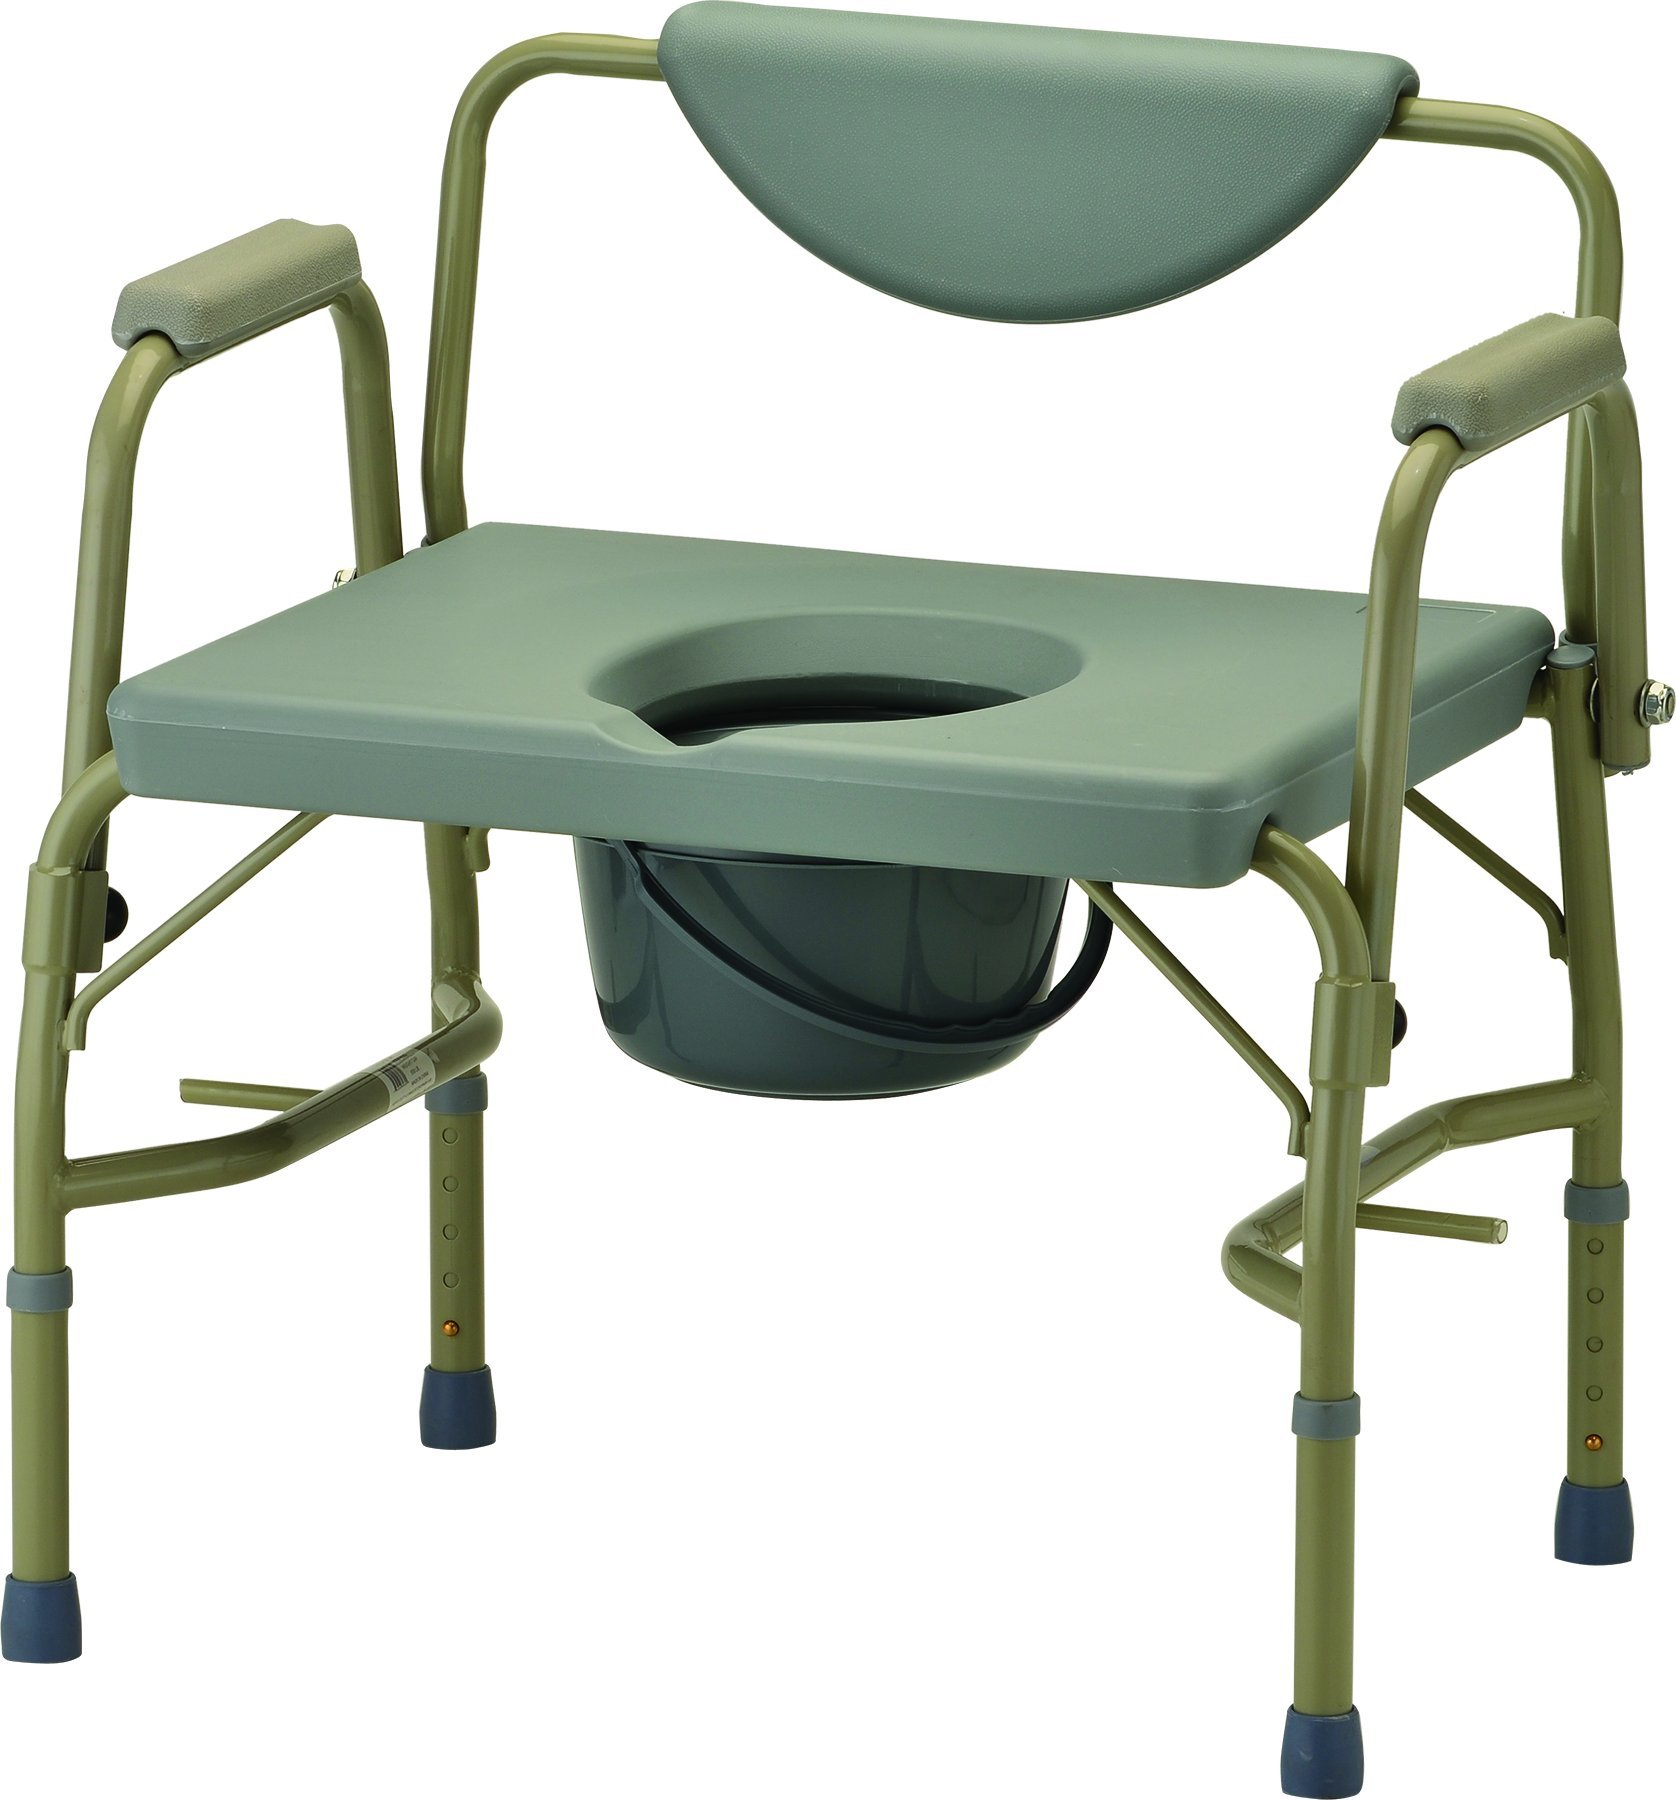 NOVA Medical Products Heavy Duty Commode with Drop-Arm, Grey, 22 Pound